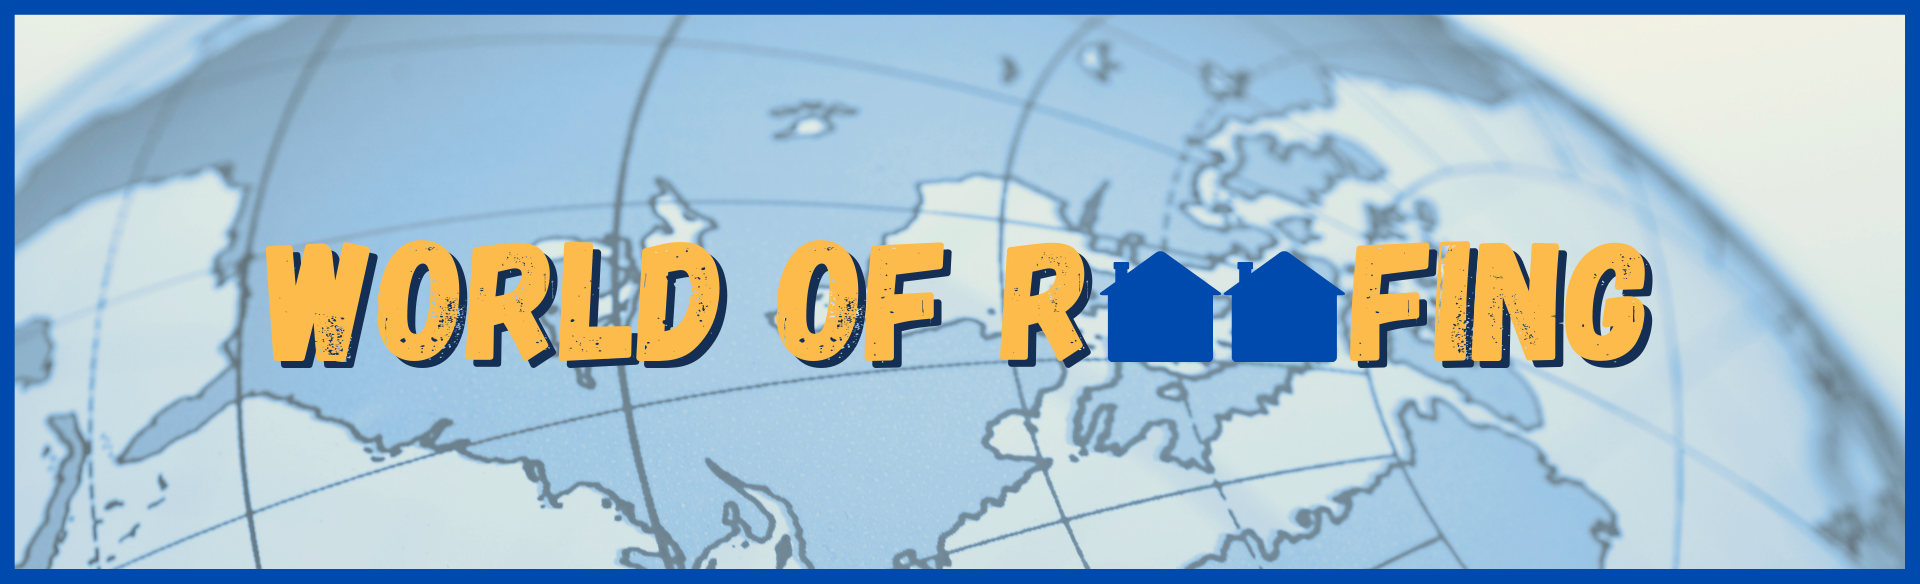 World of Roofing Episode 2 featured image